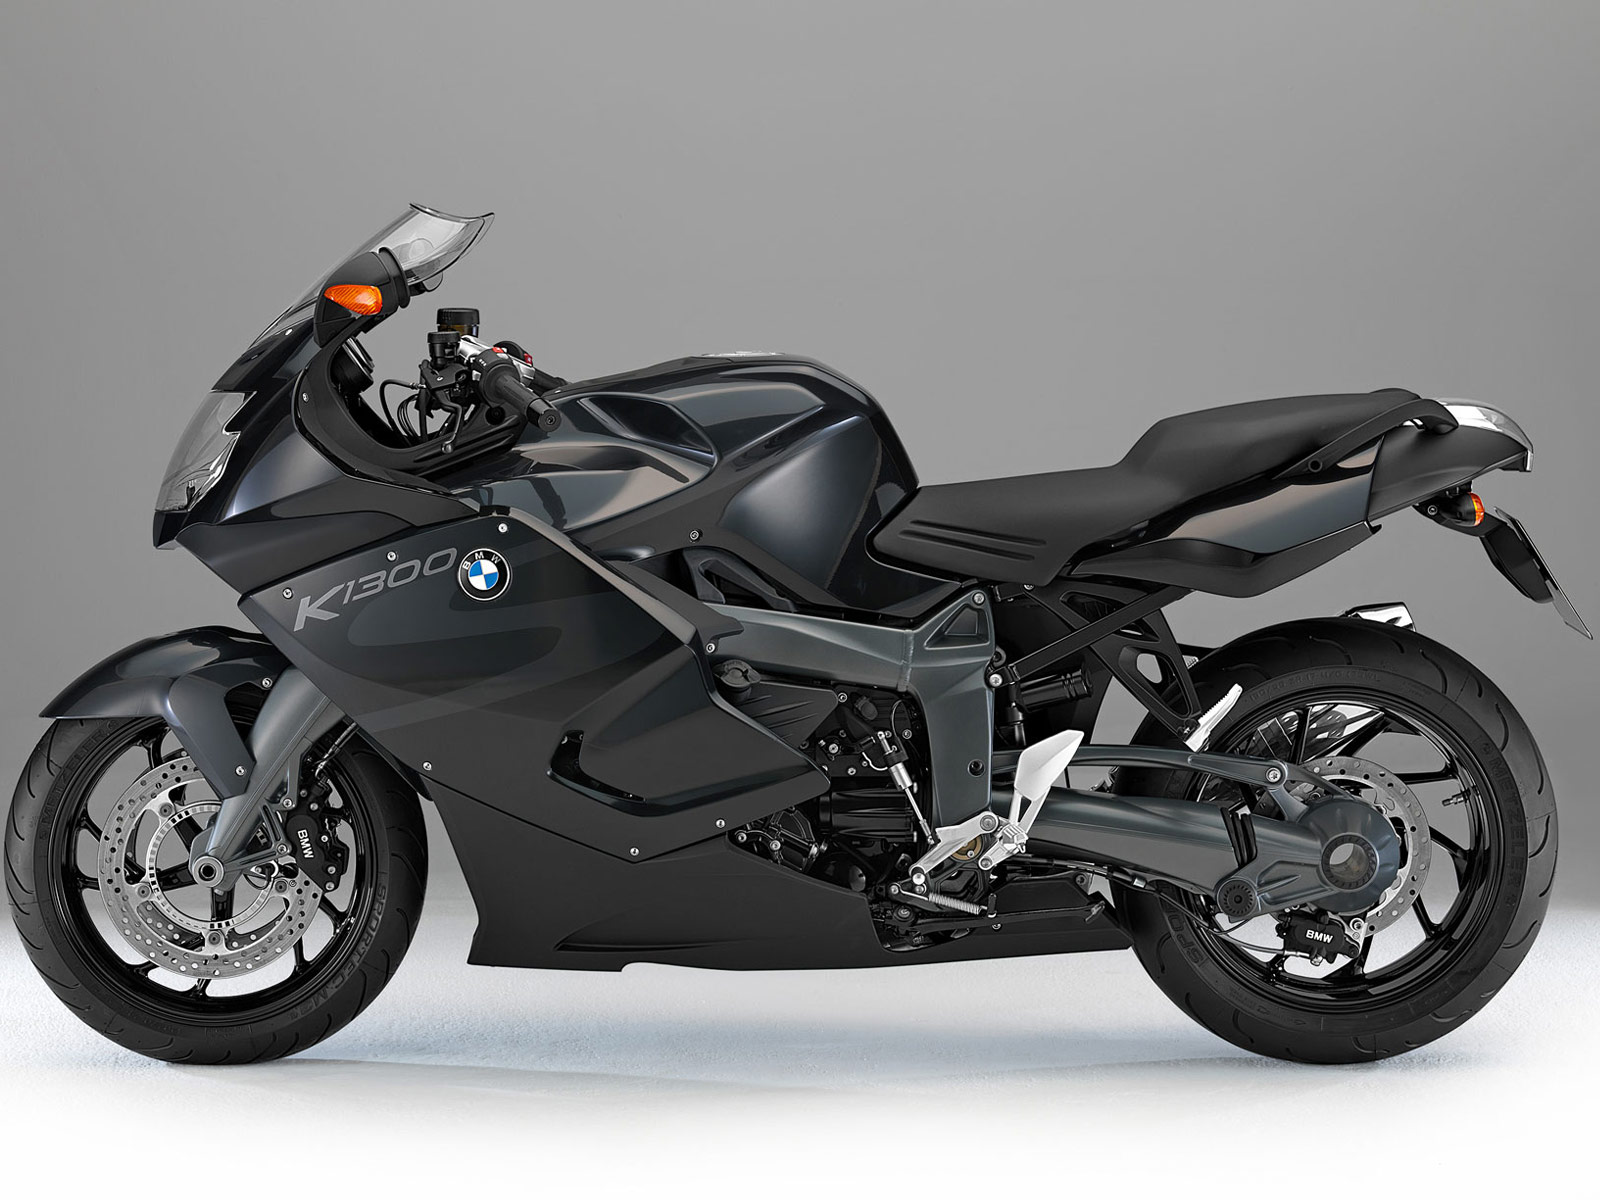 2013 bmw k1300s adventure rider. Black Bedroom Furniture Sets. Home Design Ideas